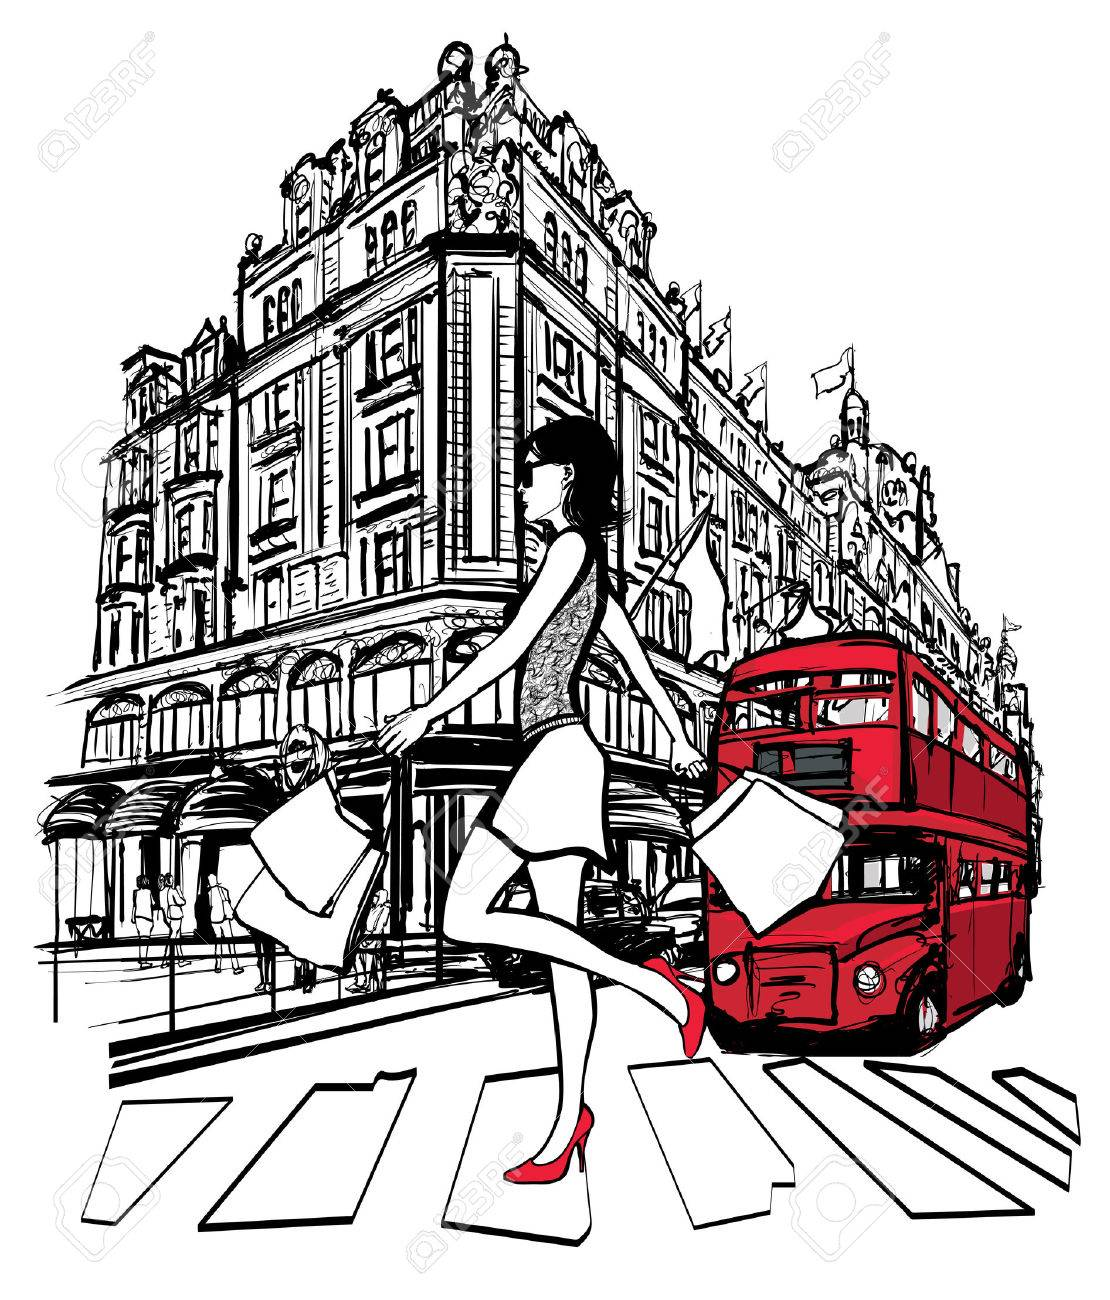 Image result for london girl shopping free cartoon image clipart